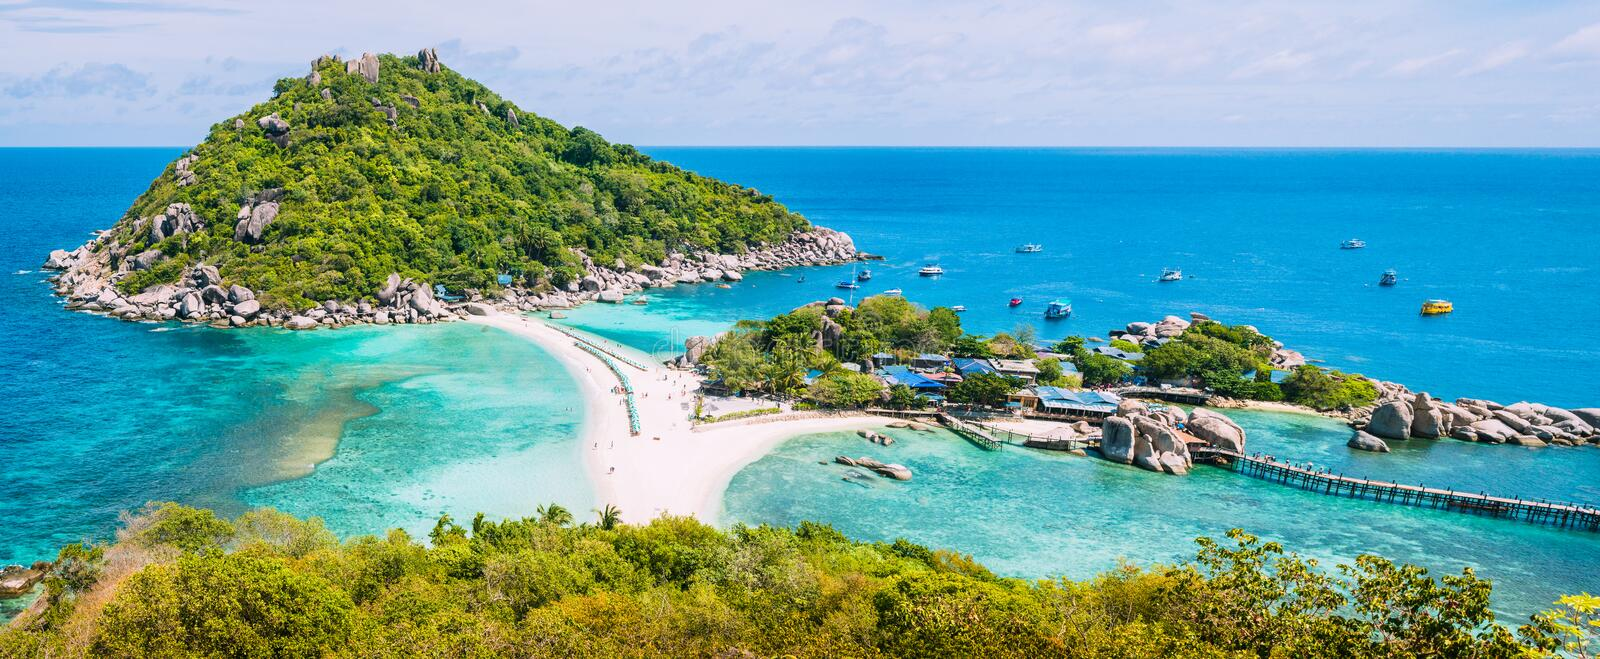 Koh Nangyuan Island on Sunny Day and Beautiful Clear Blue Water, Surat Thani, Thailand stock photography